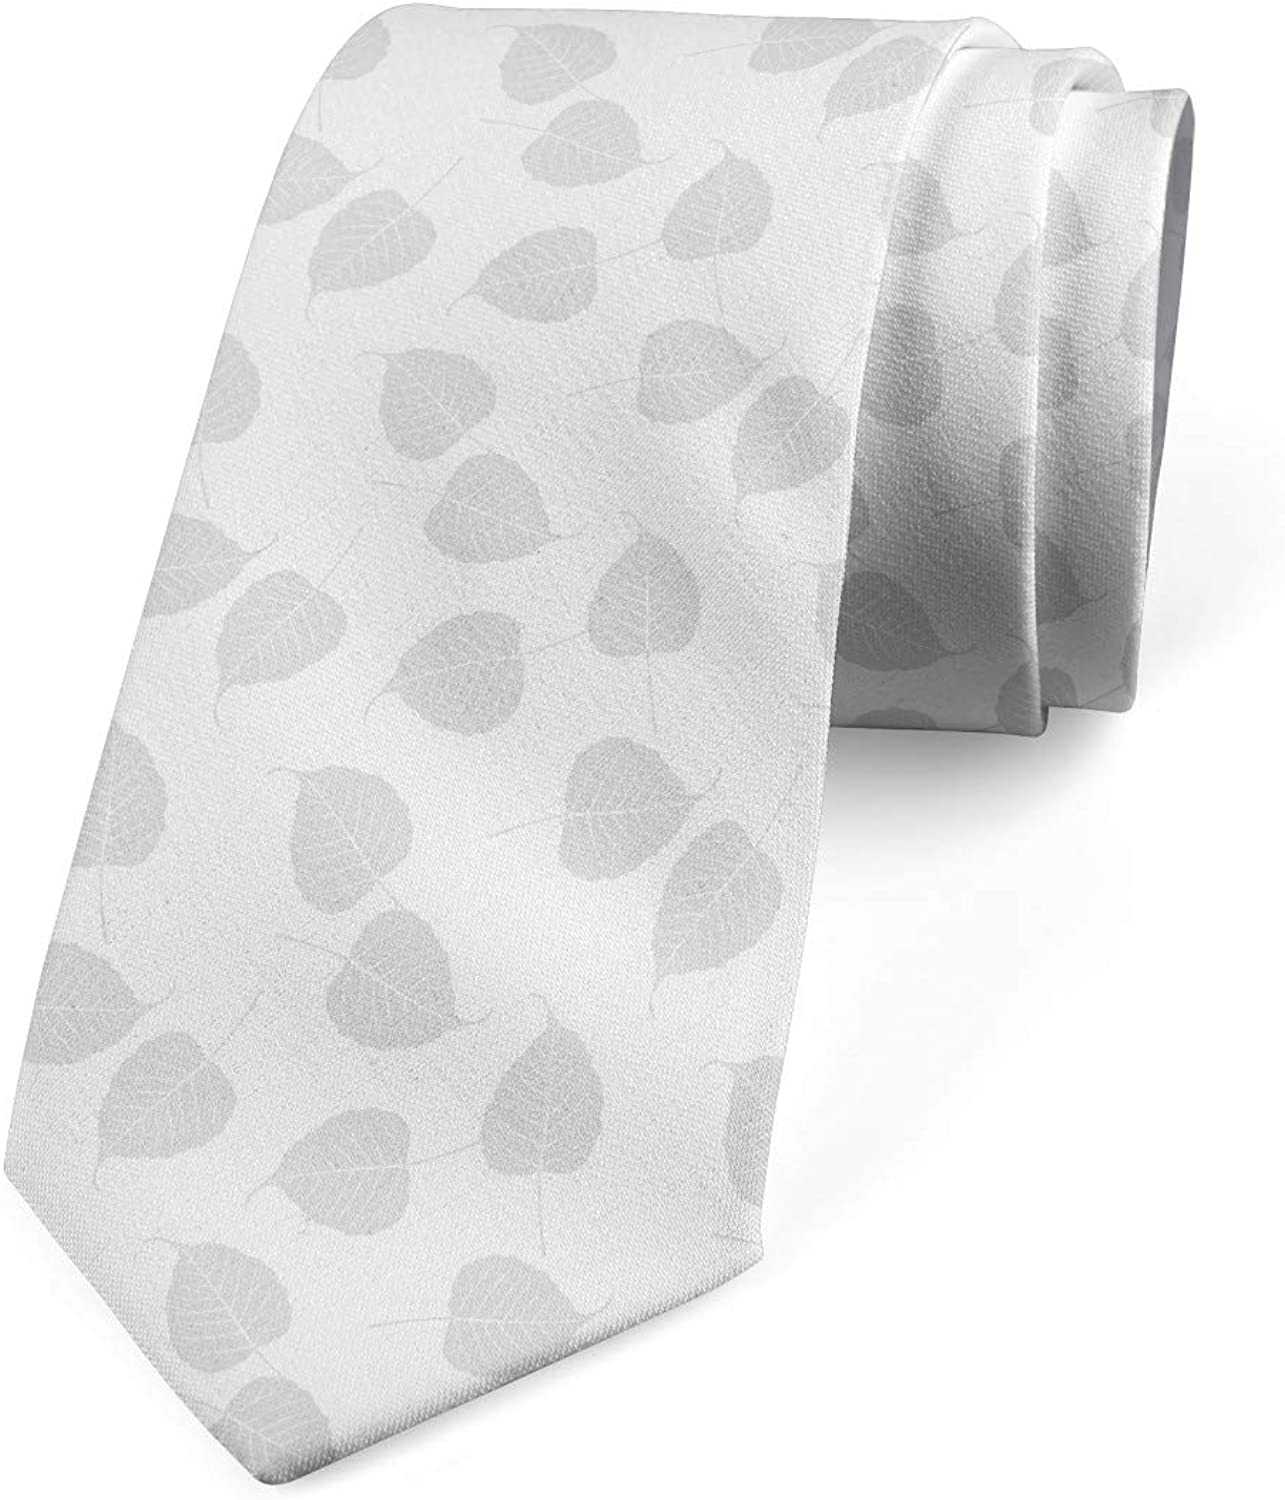 Bo Leaves Greyscale Layout 3.7 Pale Grey and White Ambesonne Necktie